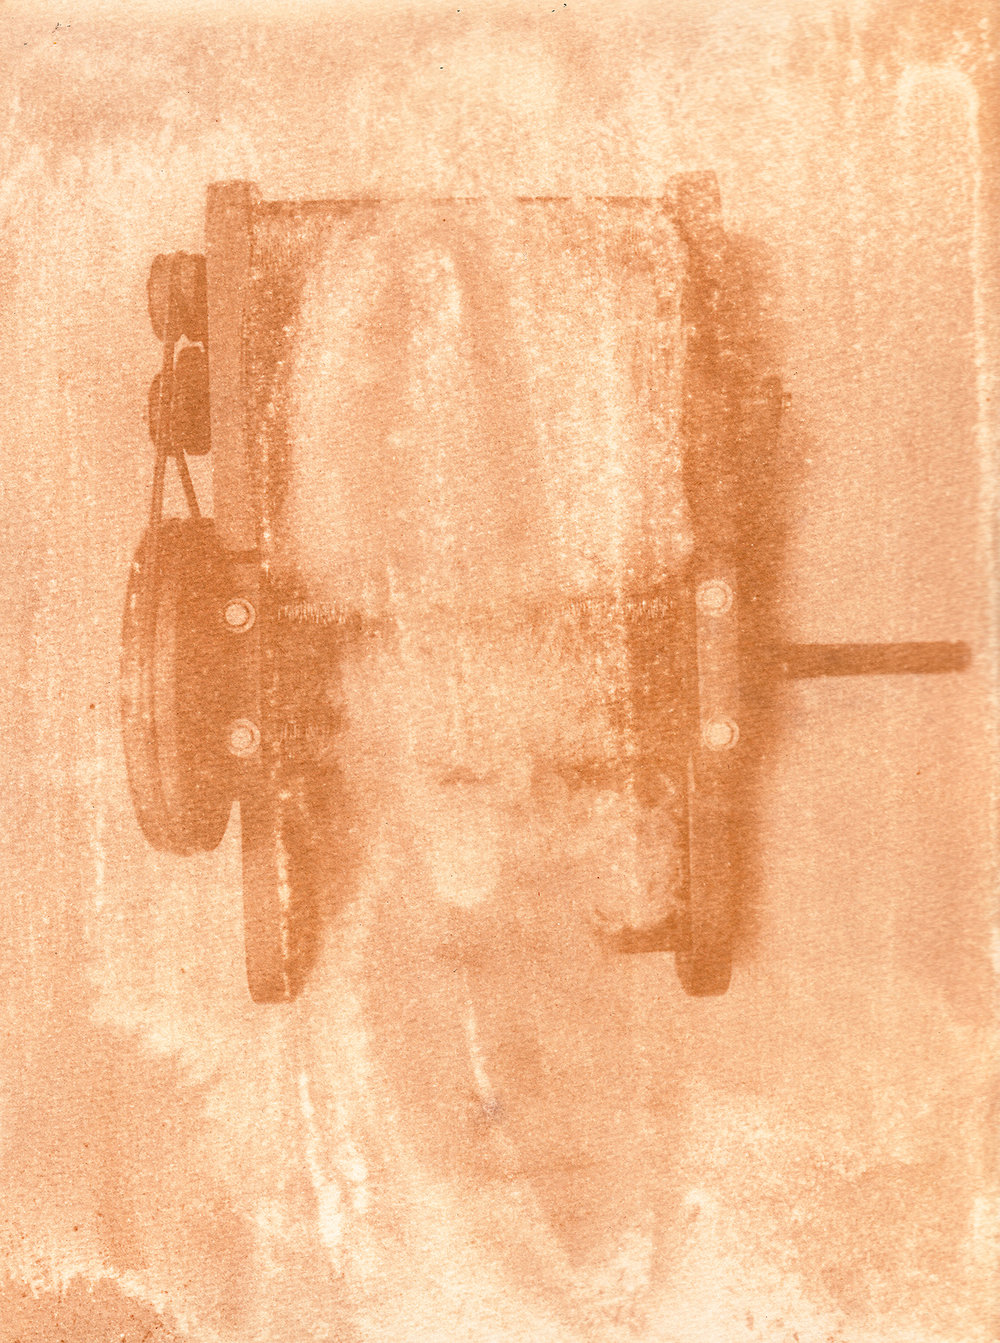 """Detail of a """"Cardadora"""" (Carding machine) used to comb the wool the """"Hilanderas del Fin del Mundo"""", a group of women dedicated to retake traditions of embroidery and weaving by invoking local production against the advance of imports using natural raw materials produced in the island. Anthotype scan made with natural dyes made with a mixture of roots of local plants such as Lupino, Calafate and Turmeric. Photographer: Luján Agusti. Tierra del Fuego. April 15th, 2018"""